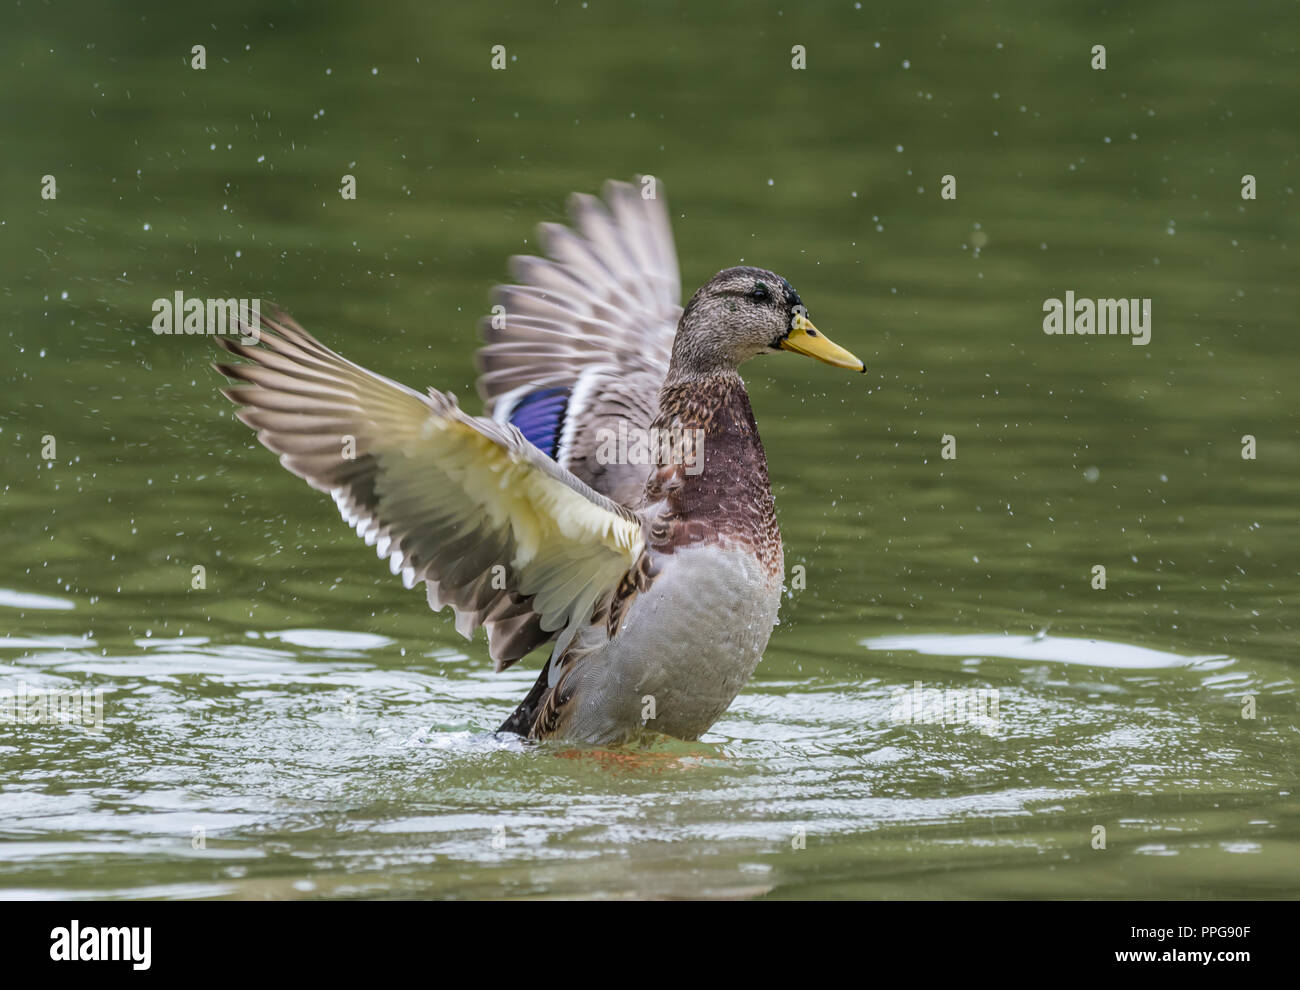 Hen (female) Mallard Duck (Anas platyrhynchos) on water flapping wings, with wings out stretched back and up in Summer in West Sussex, UK. - Stock Image